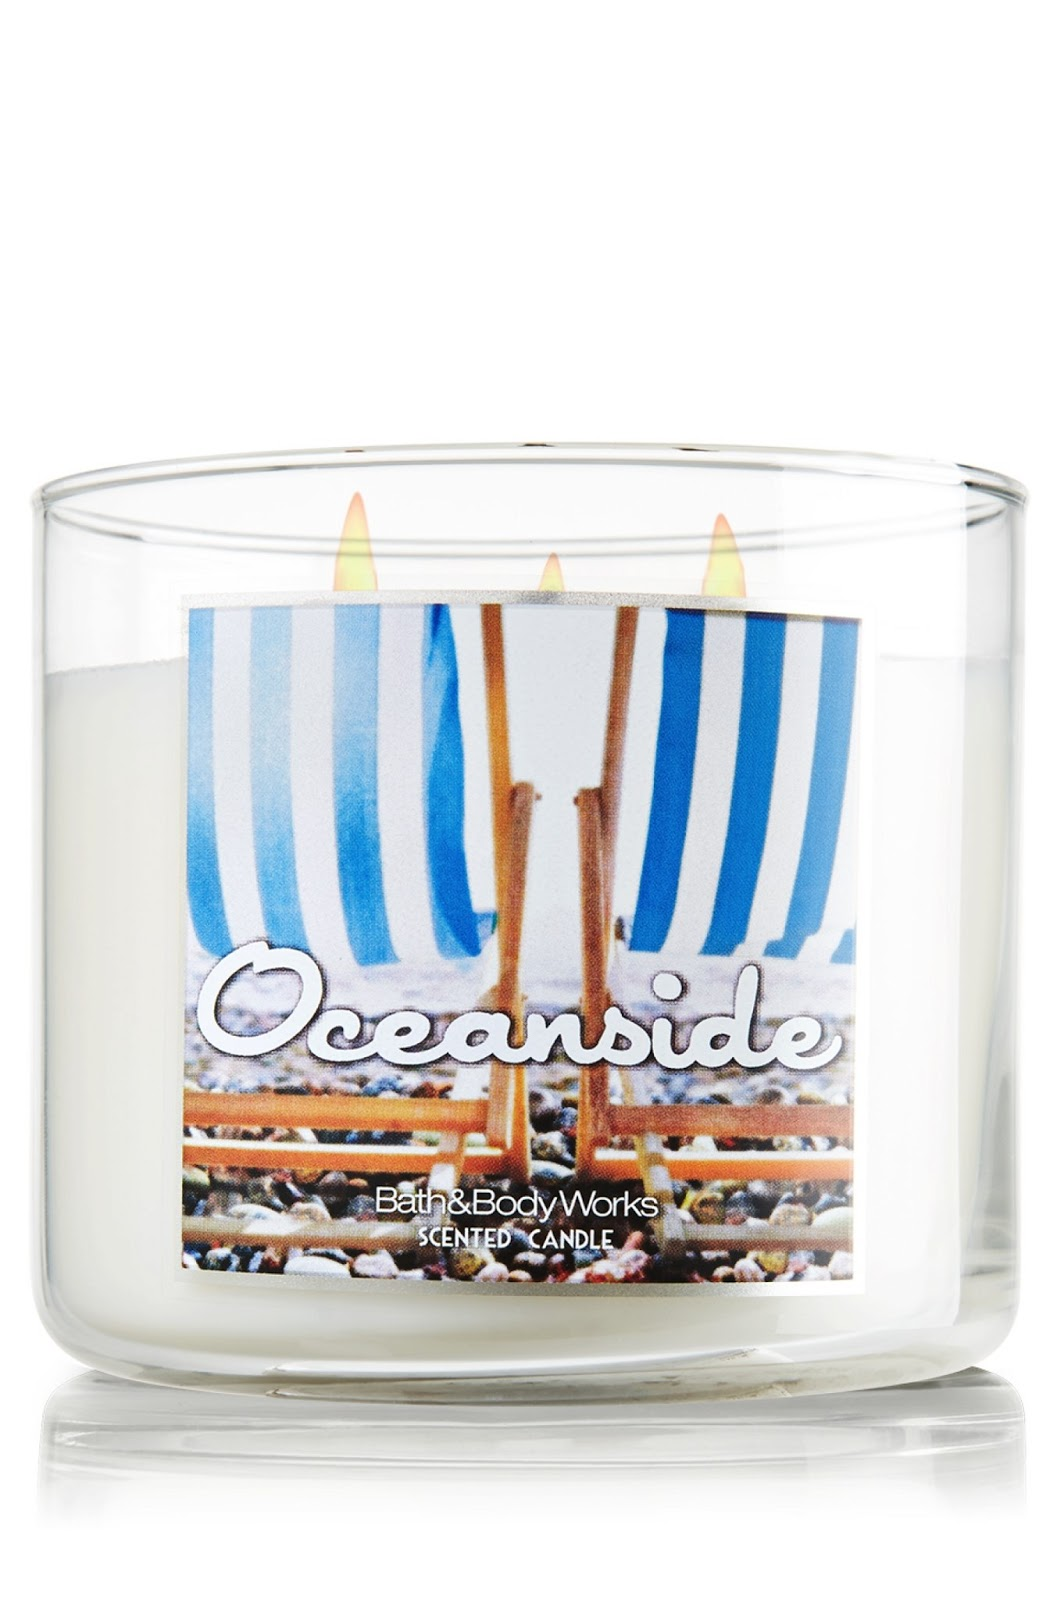 Real Talk About Bath And Body Works Candles May 2013